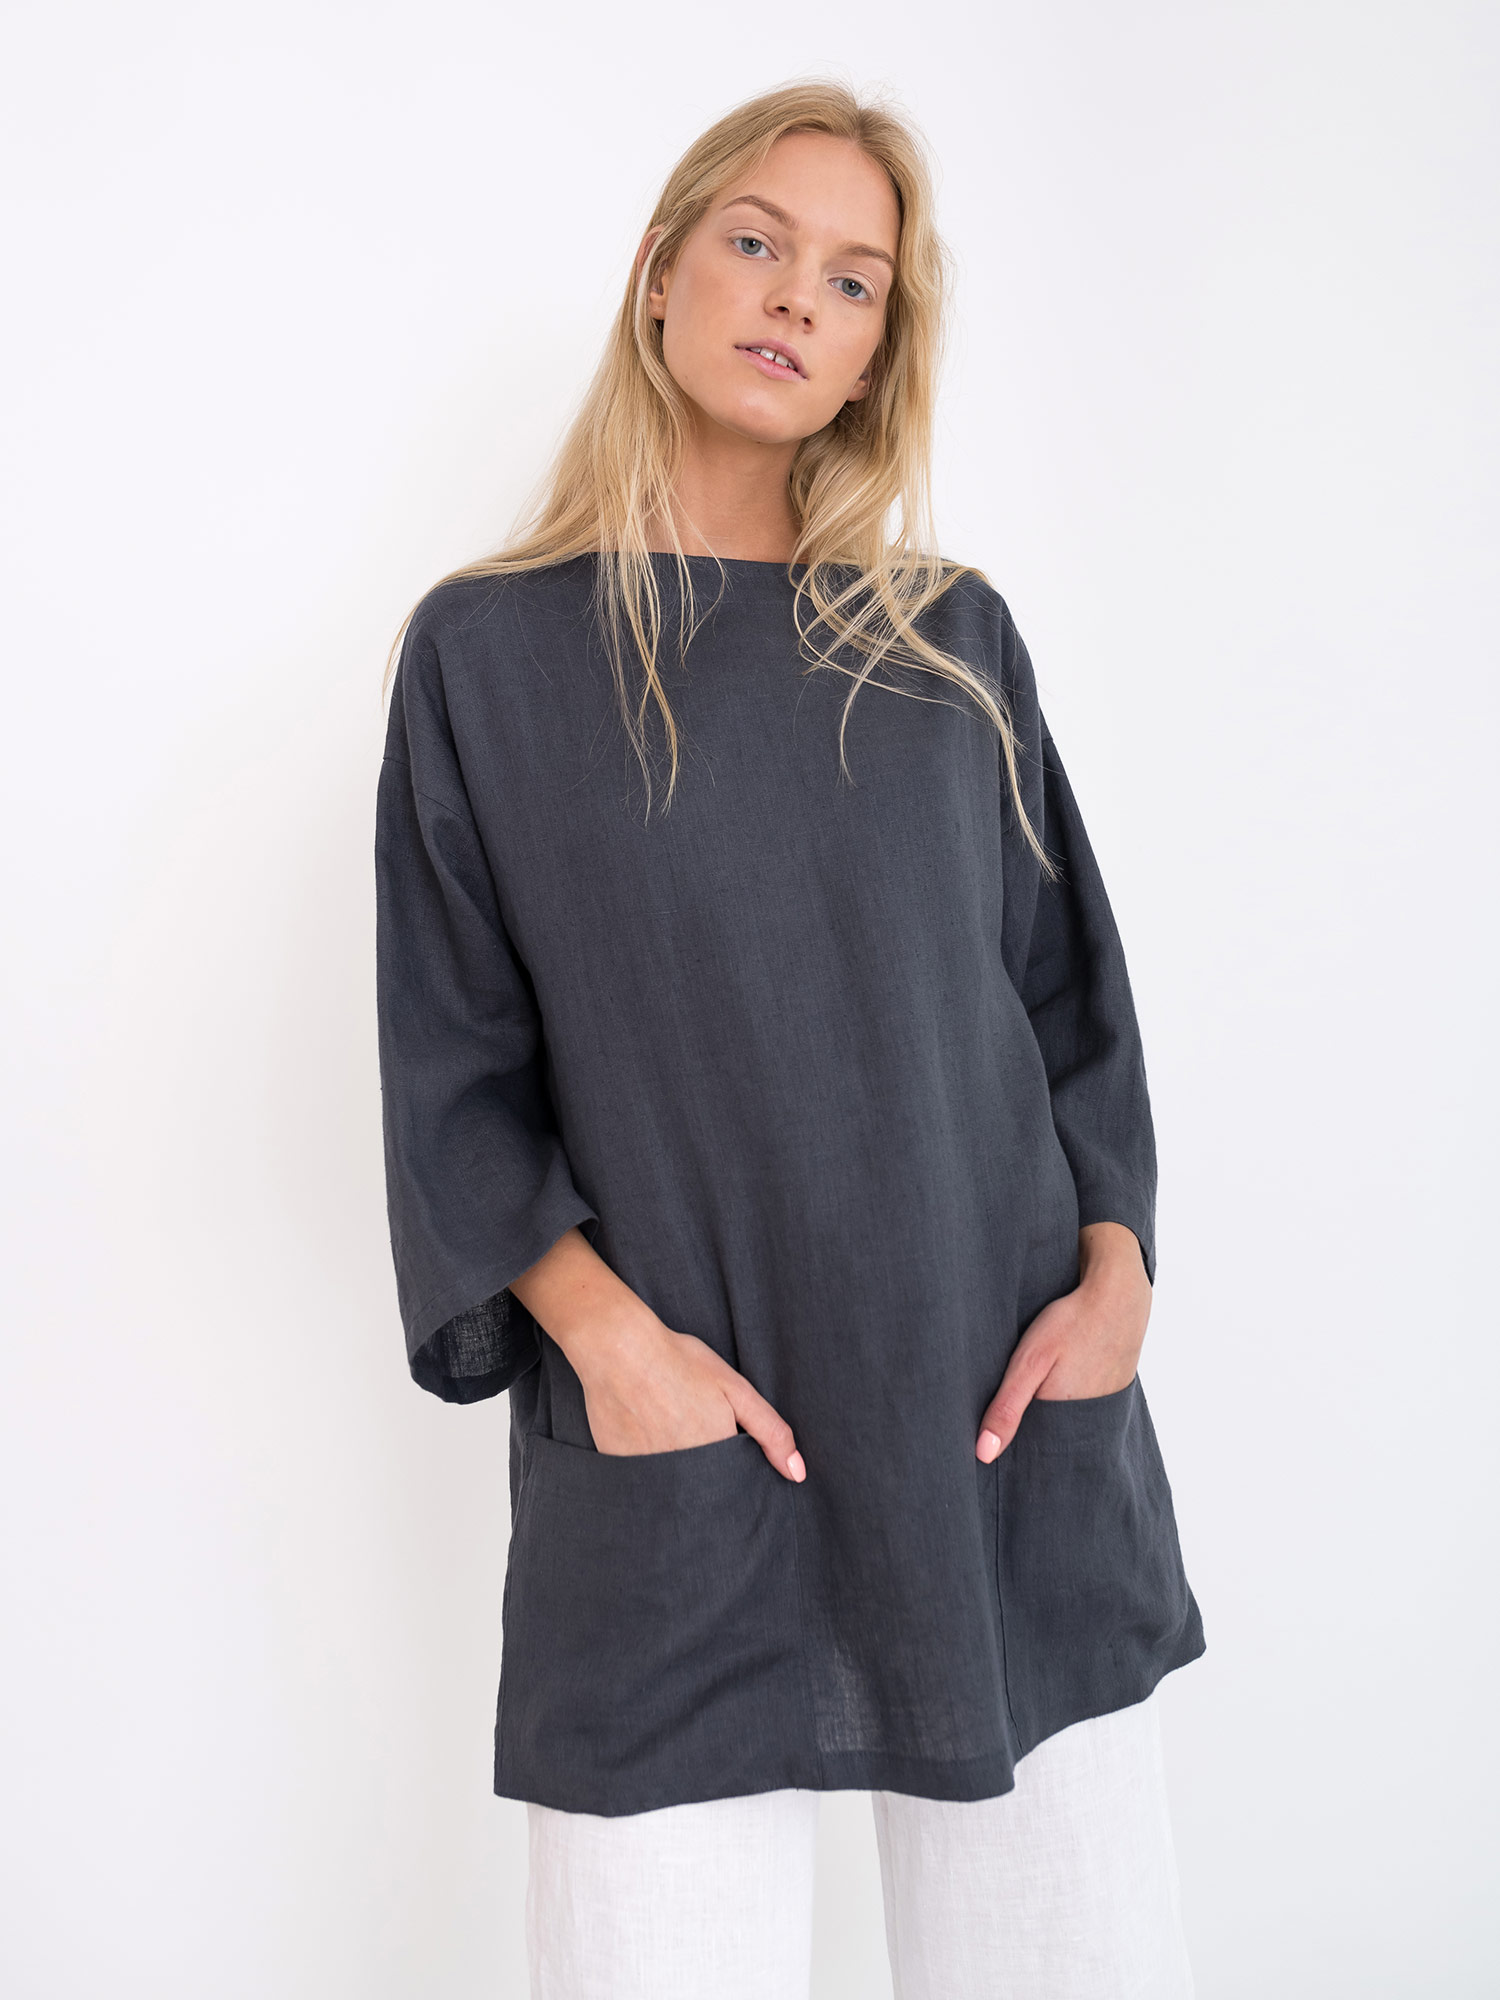 Image 1 of ALEXIS Oversized Linen Tunic Top from Love and Confuse 9d16d4de9e3e7